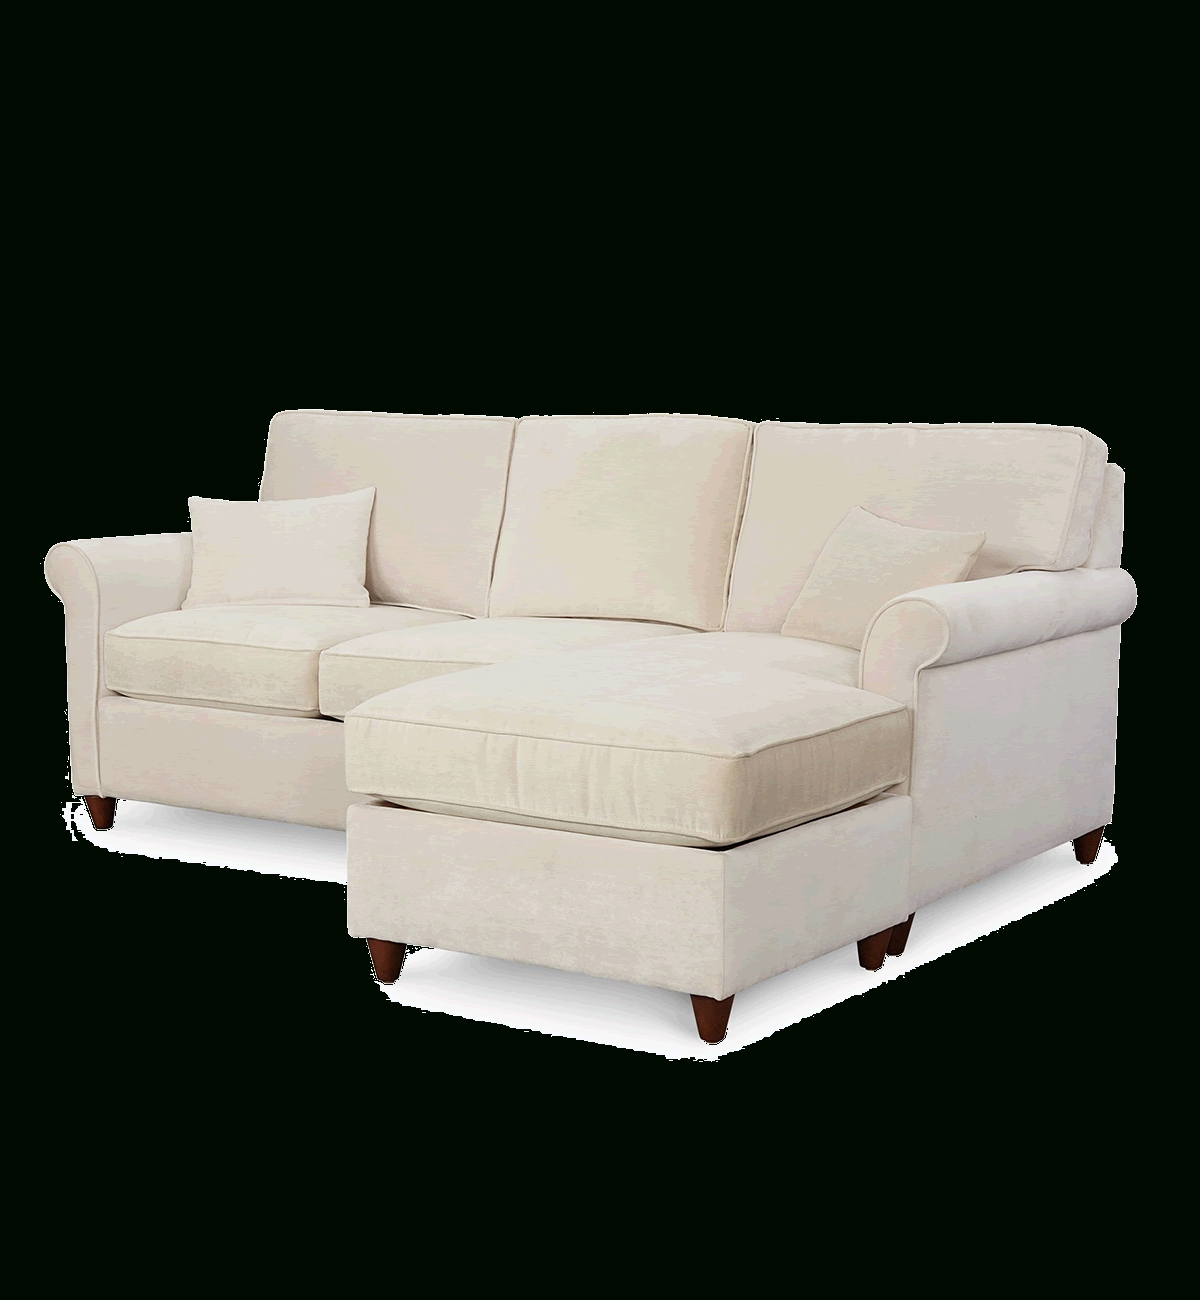 Macys Leather Sofas With Regard To Most Current Leather Couches And Sofas – Macy's (View 14 of 20)